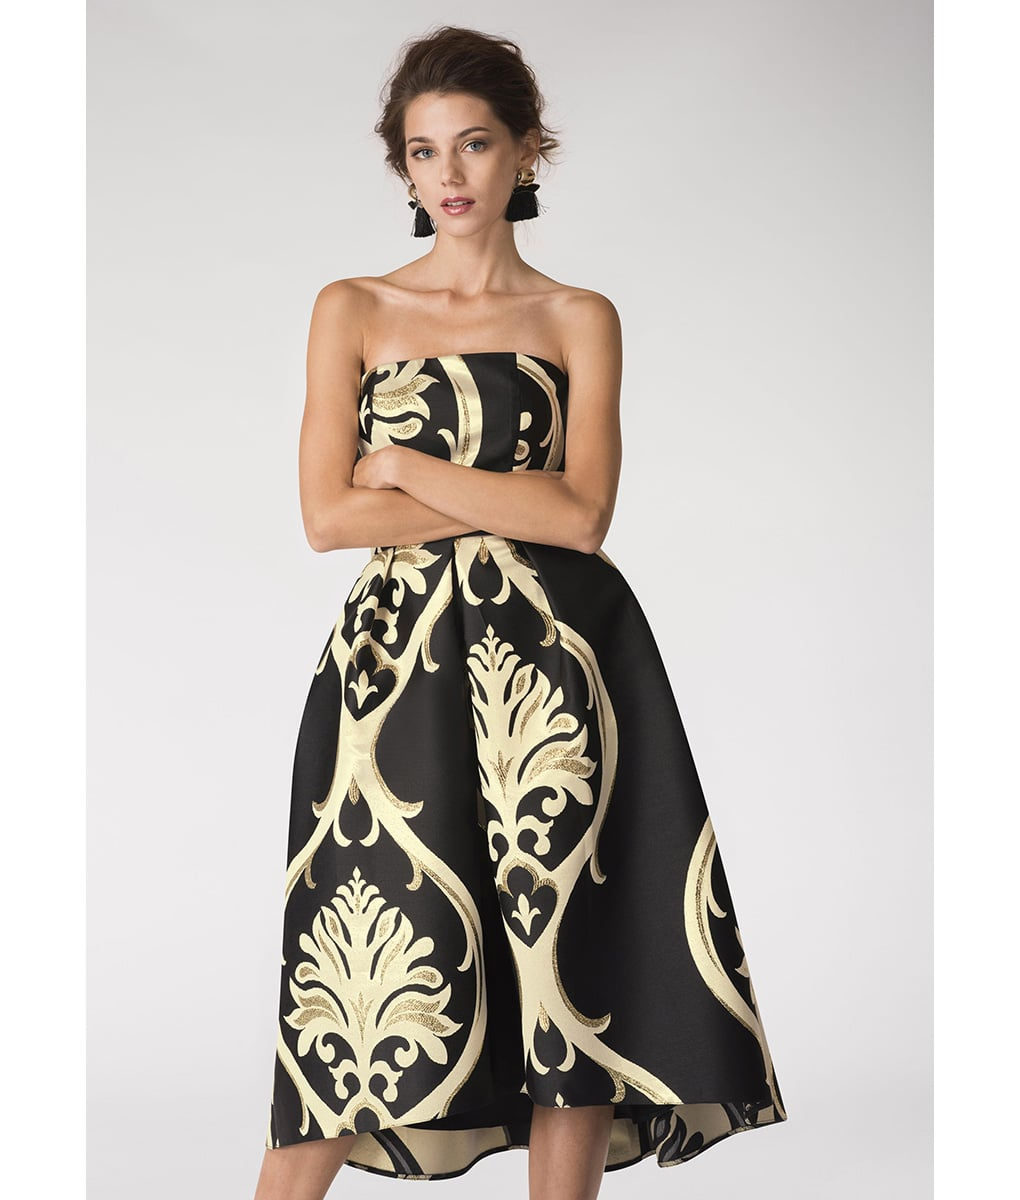 Alila-Strapless-brocade-black-and-gold-evening-dress- ef8196f9eb5